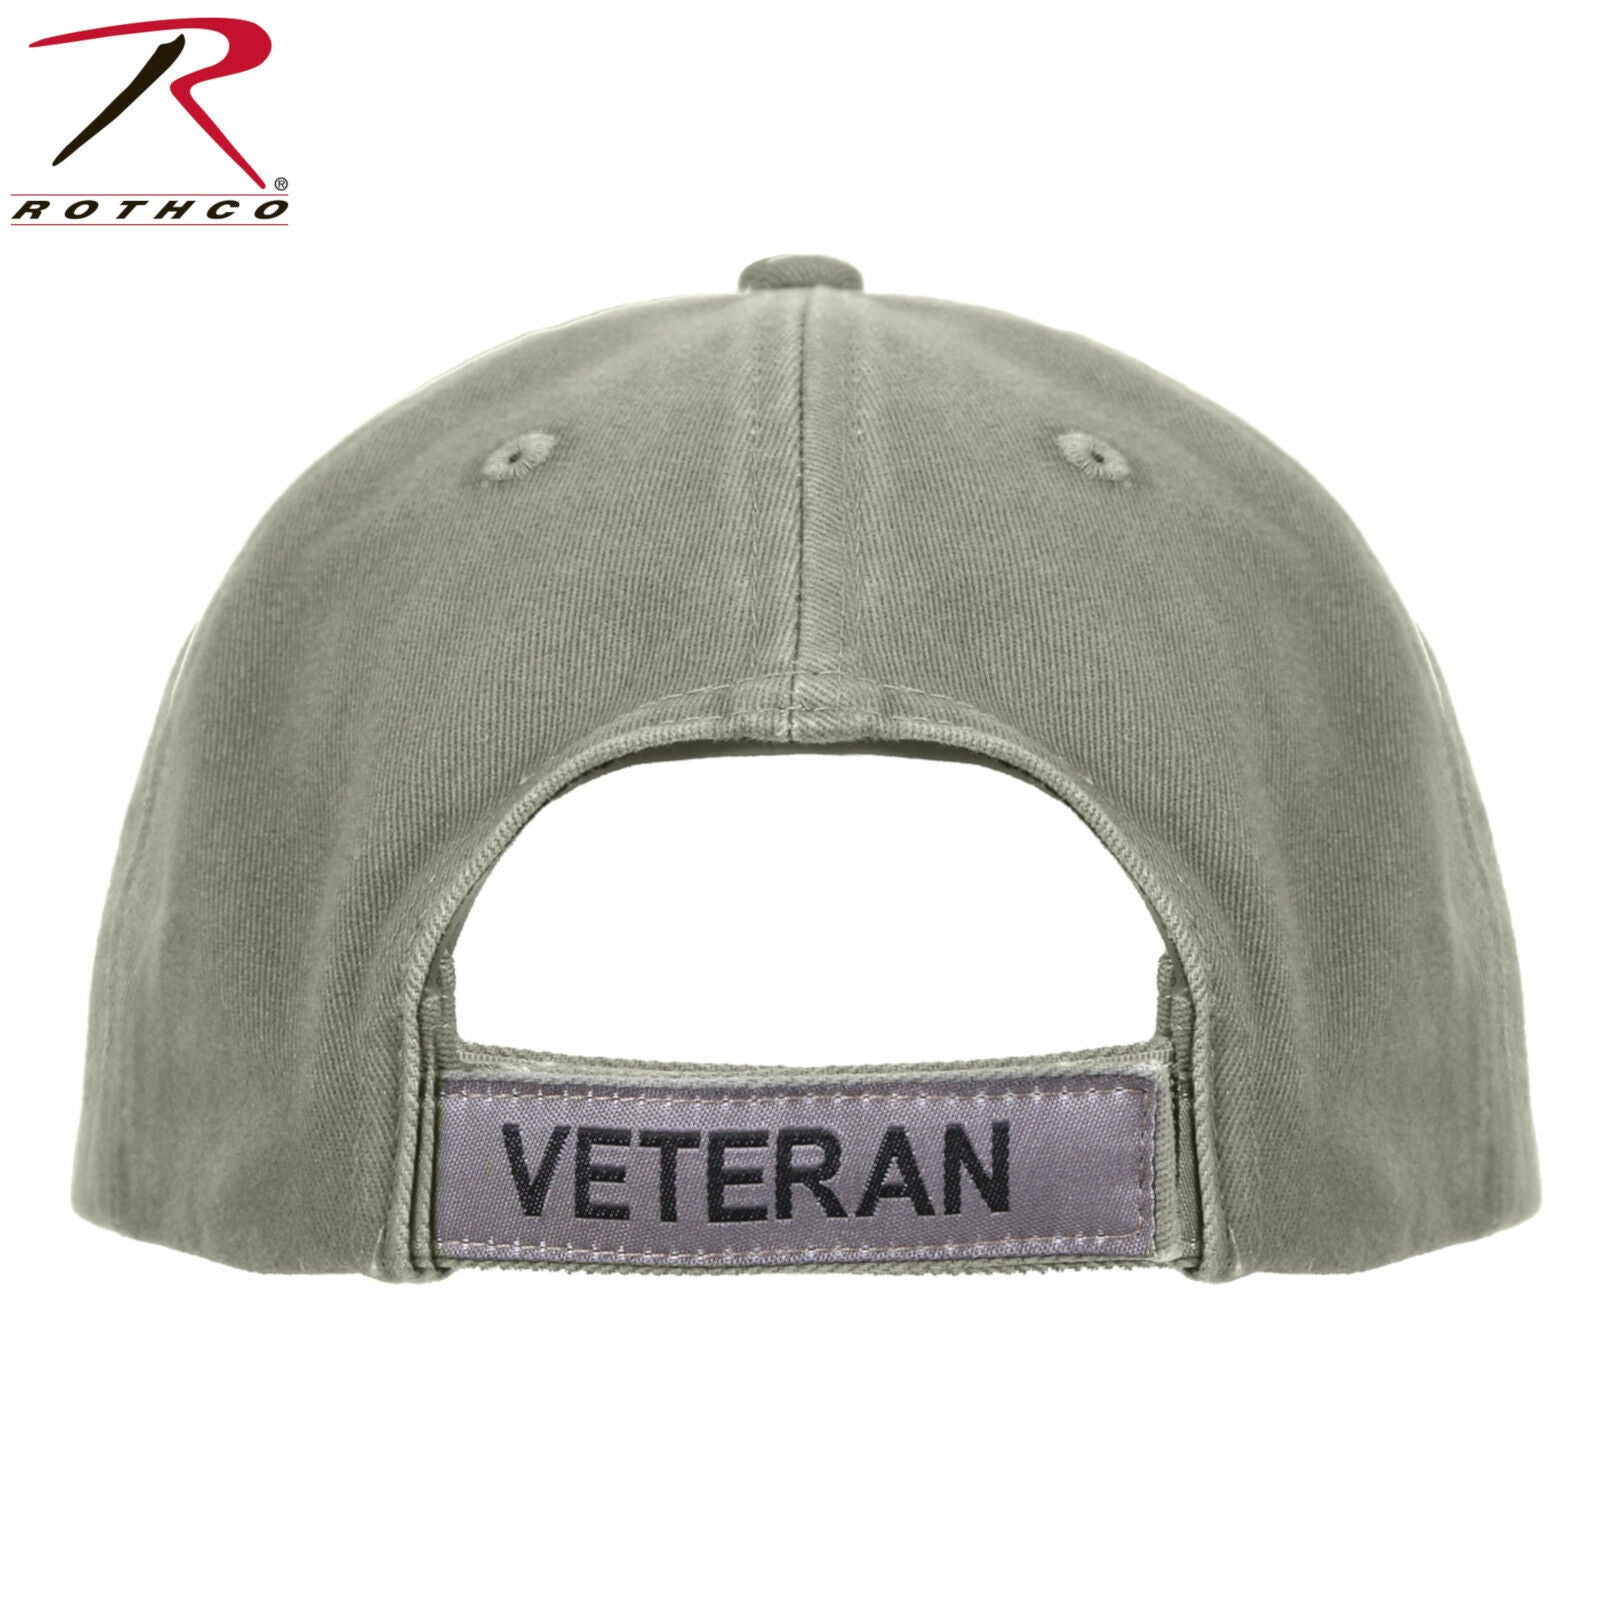 c51c30e39e624 ... Rothco Vintage Olive Drab Veteran Mid-Low Profile Cap With Embroidered  U.S. Flag